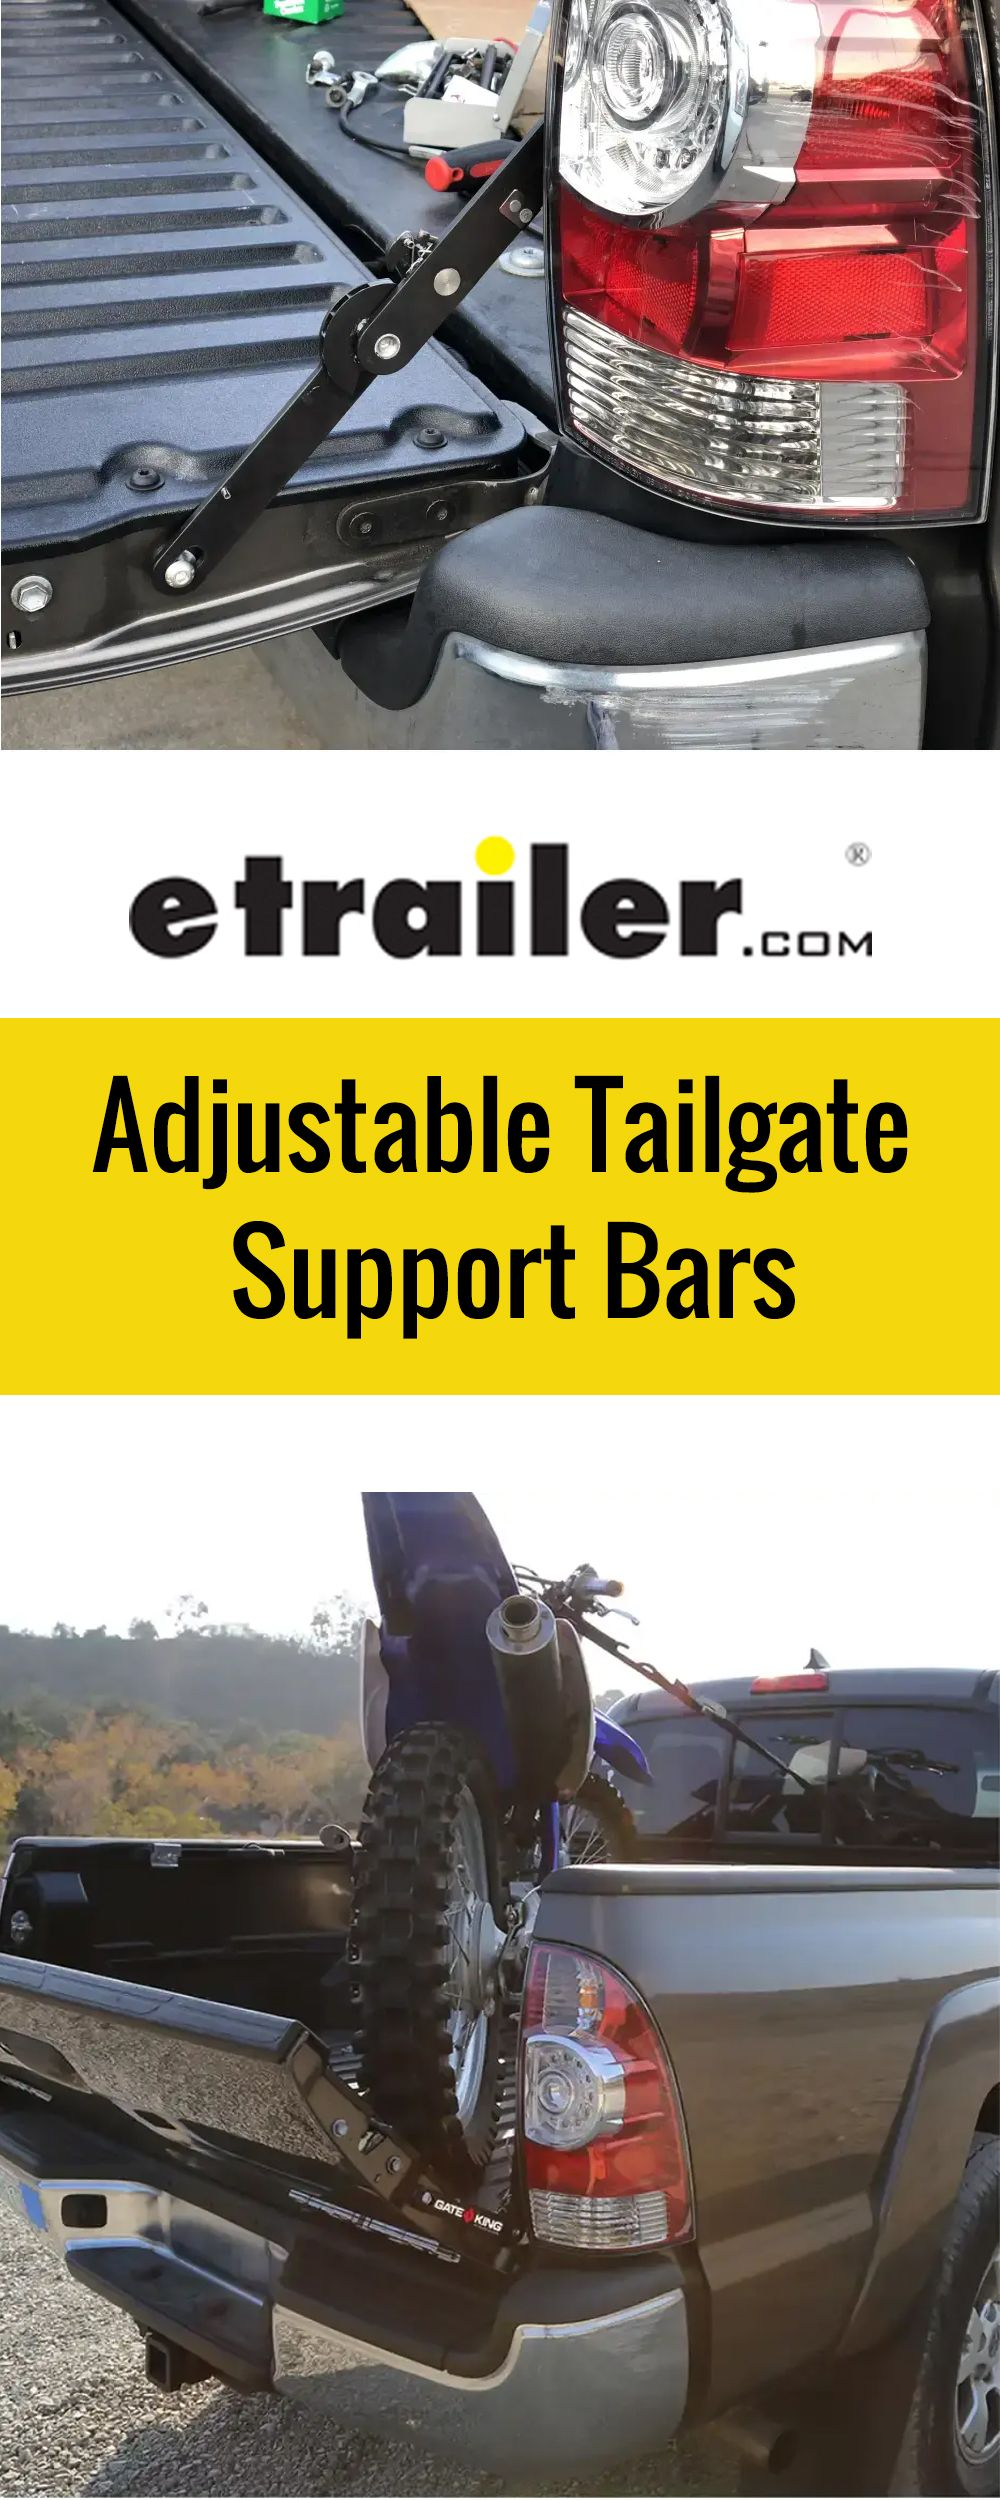 2014 Ford F150 Adjustable Tailgate Support Bars in 2020